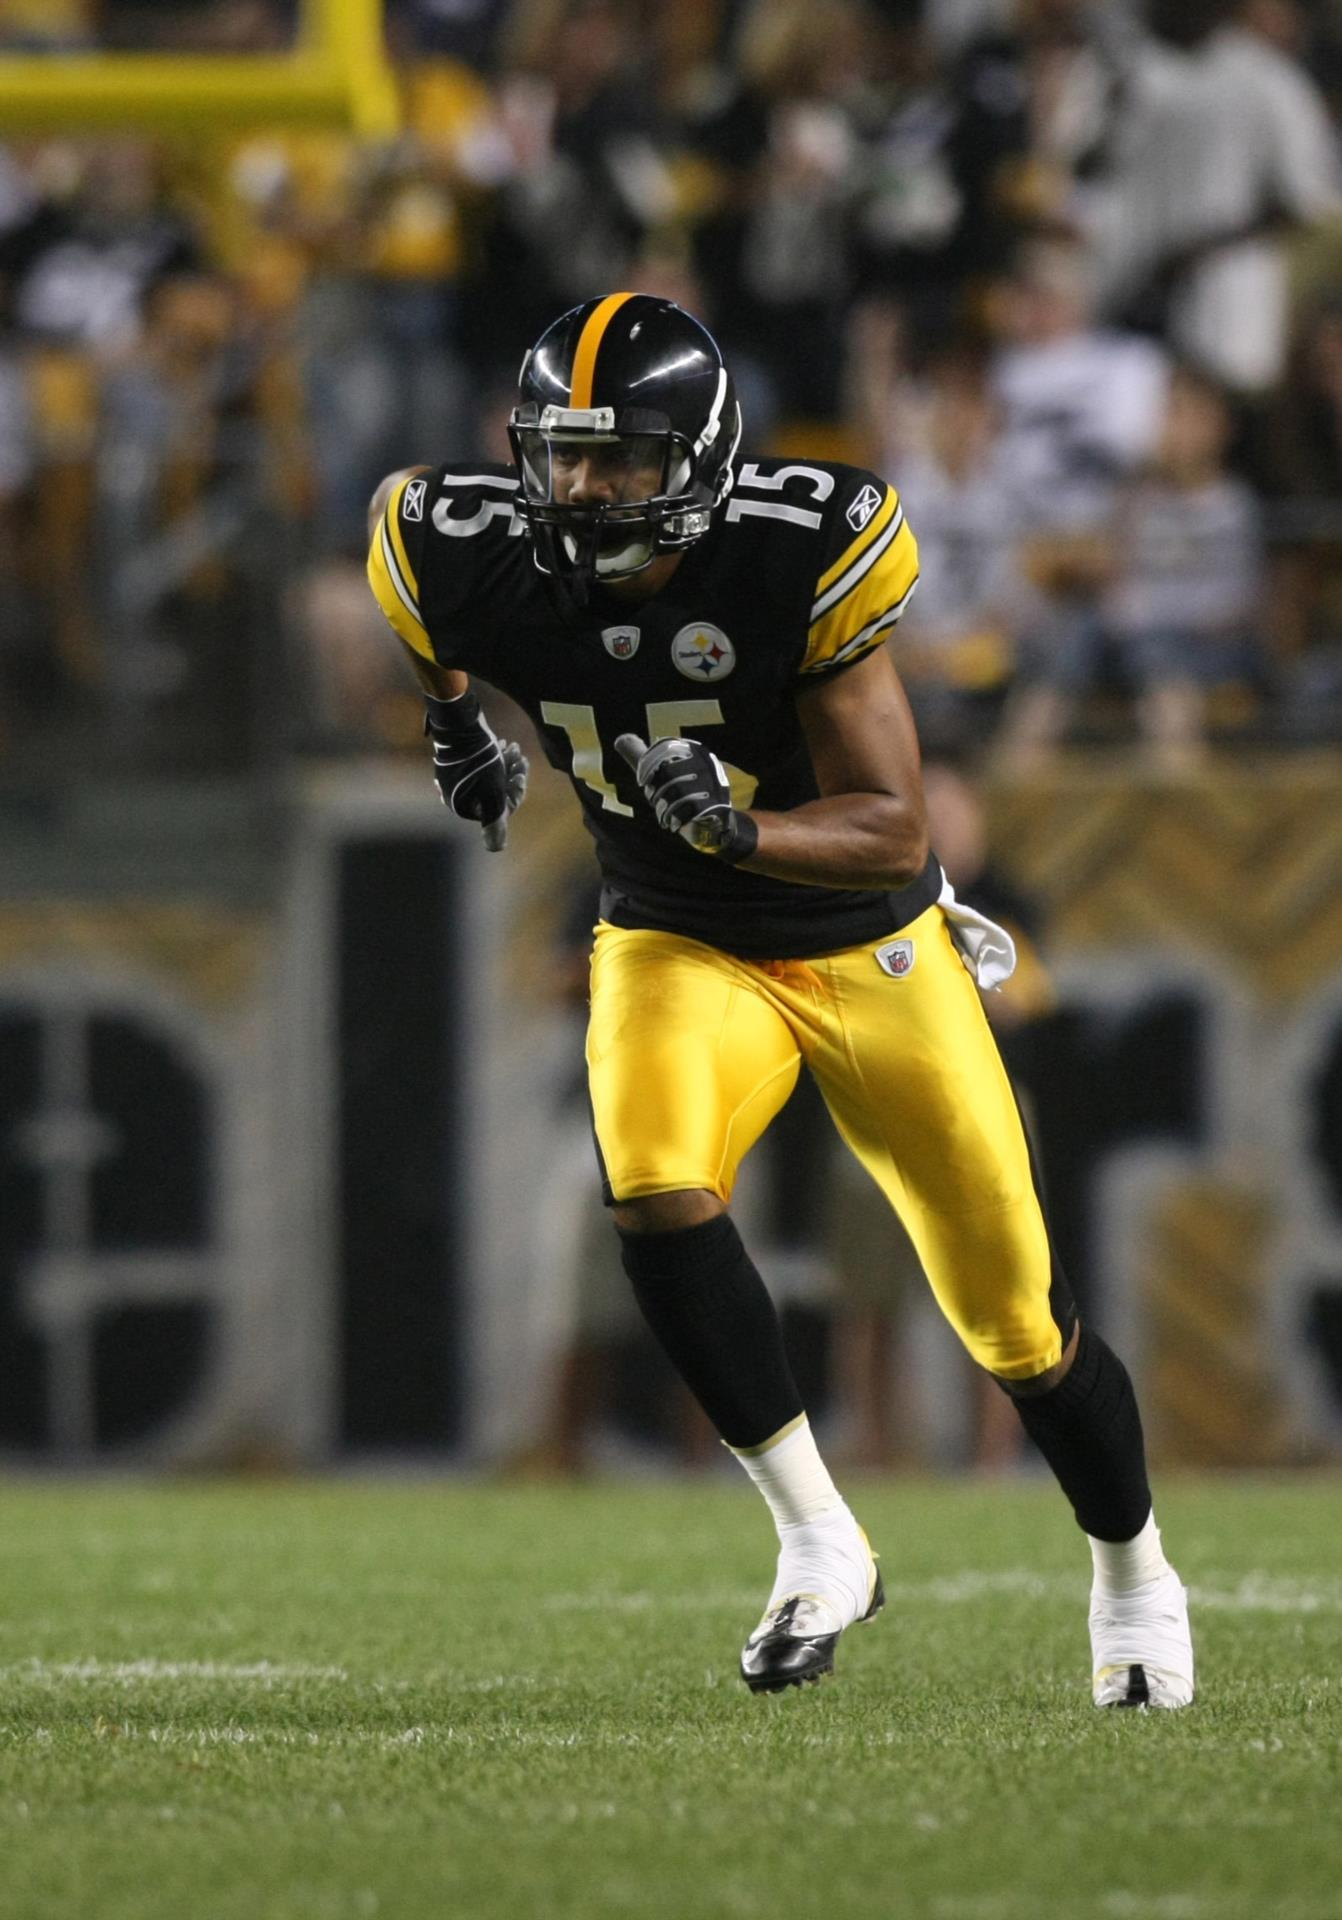 Wes Lyons Steelers #15